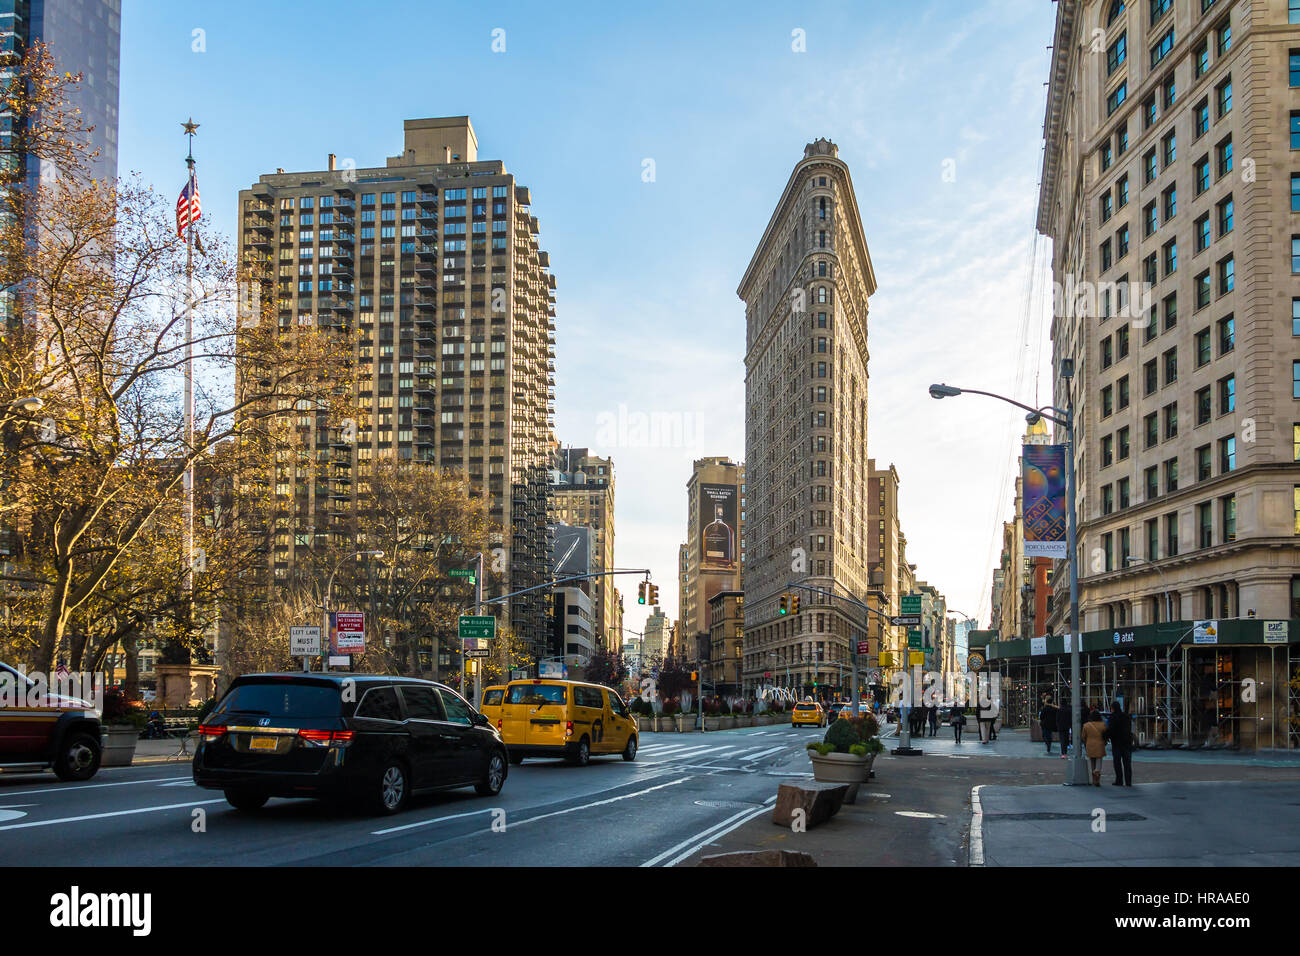 Flatiron Building - New York City, USA - Stock Image